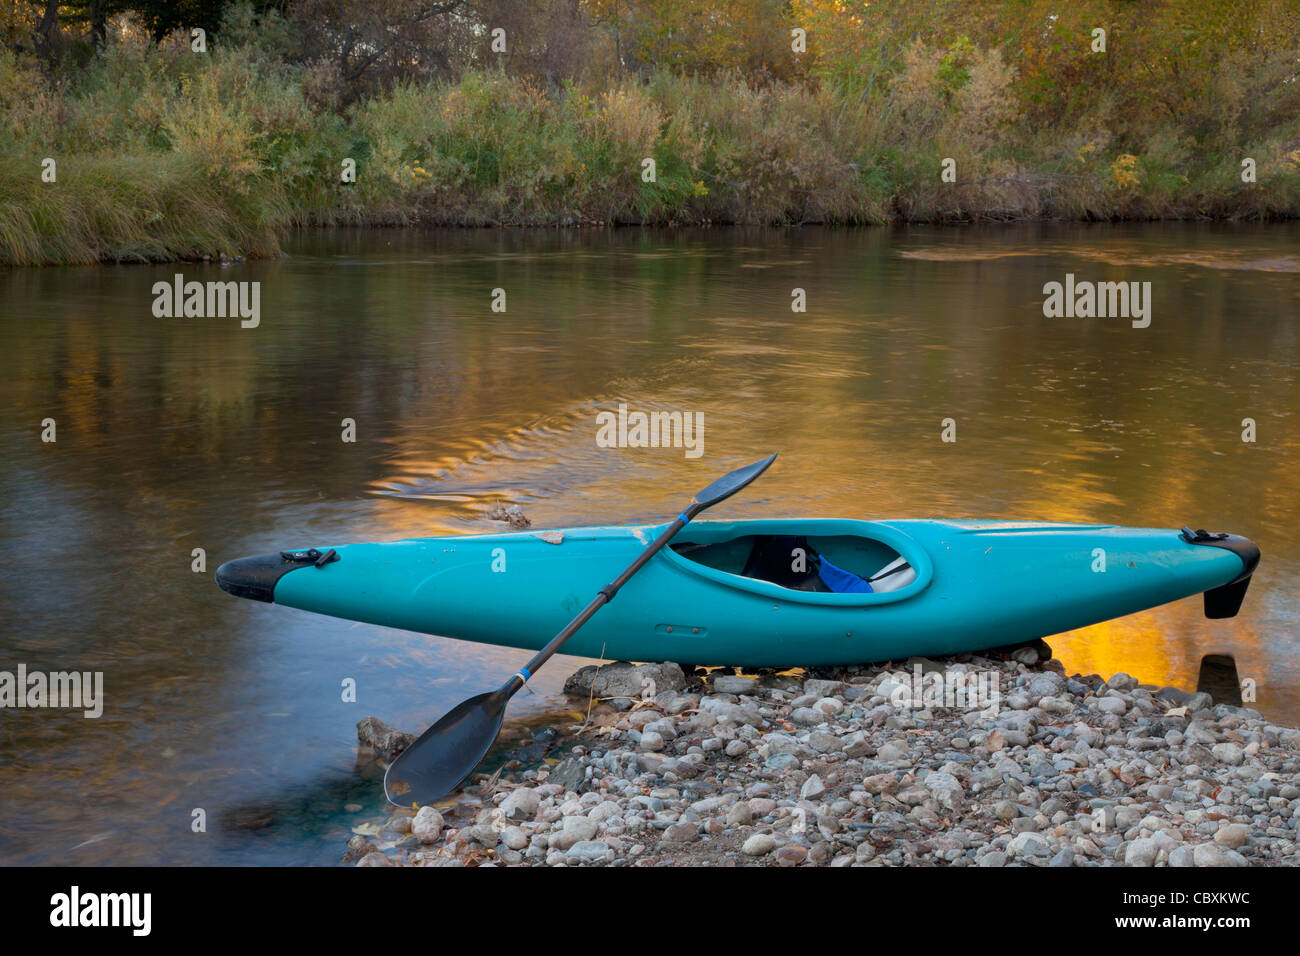 blue whitewater kayak on a rocky shore against river with gold color reflection - Stock Image